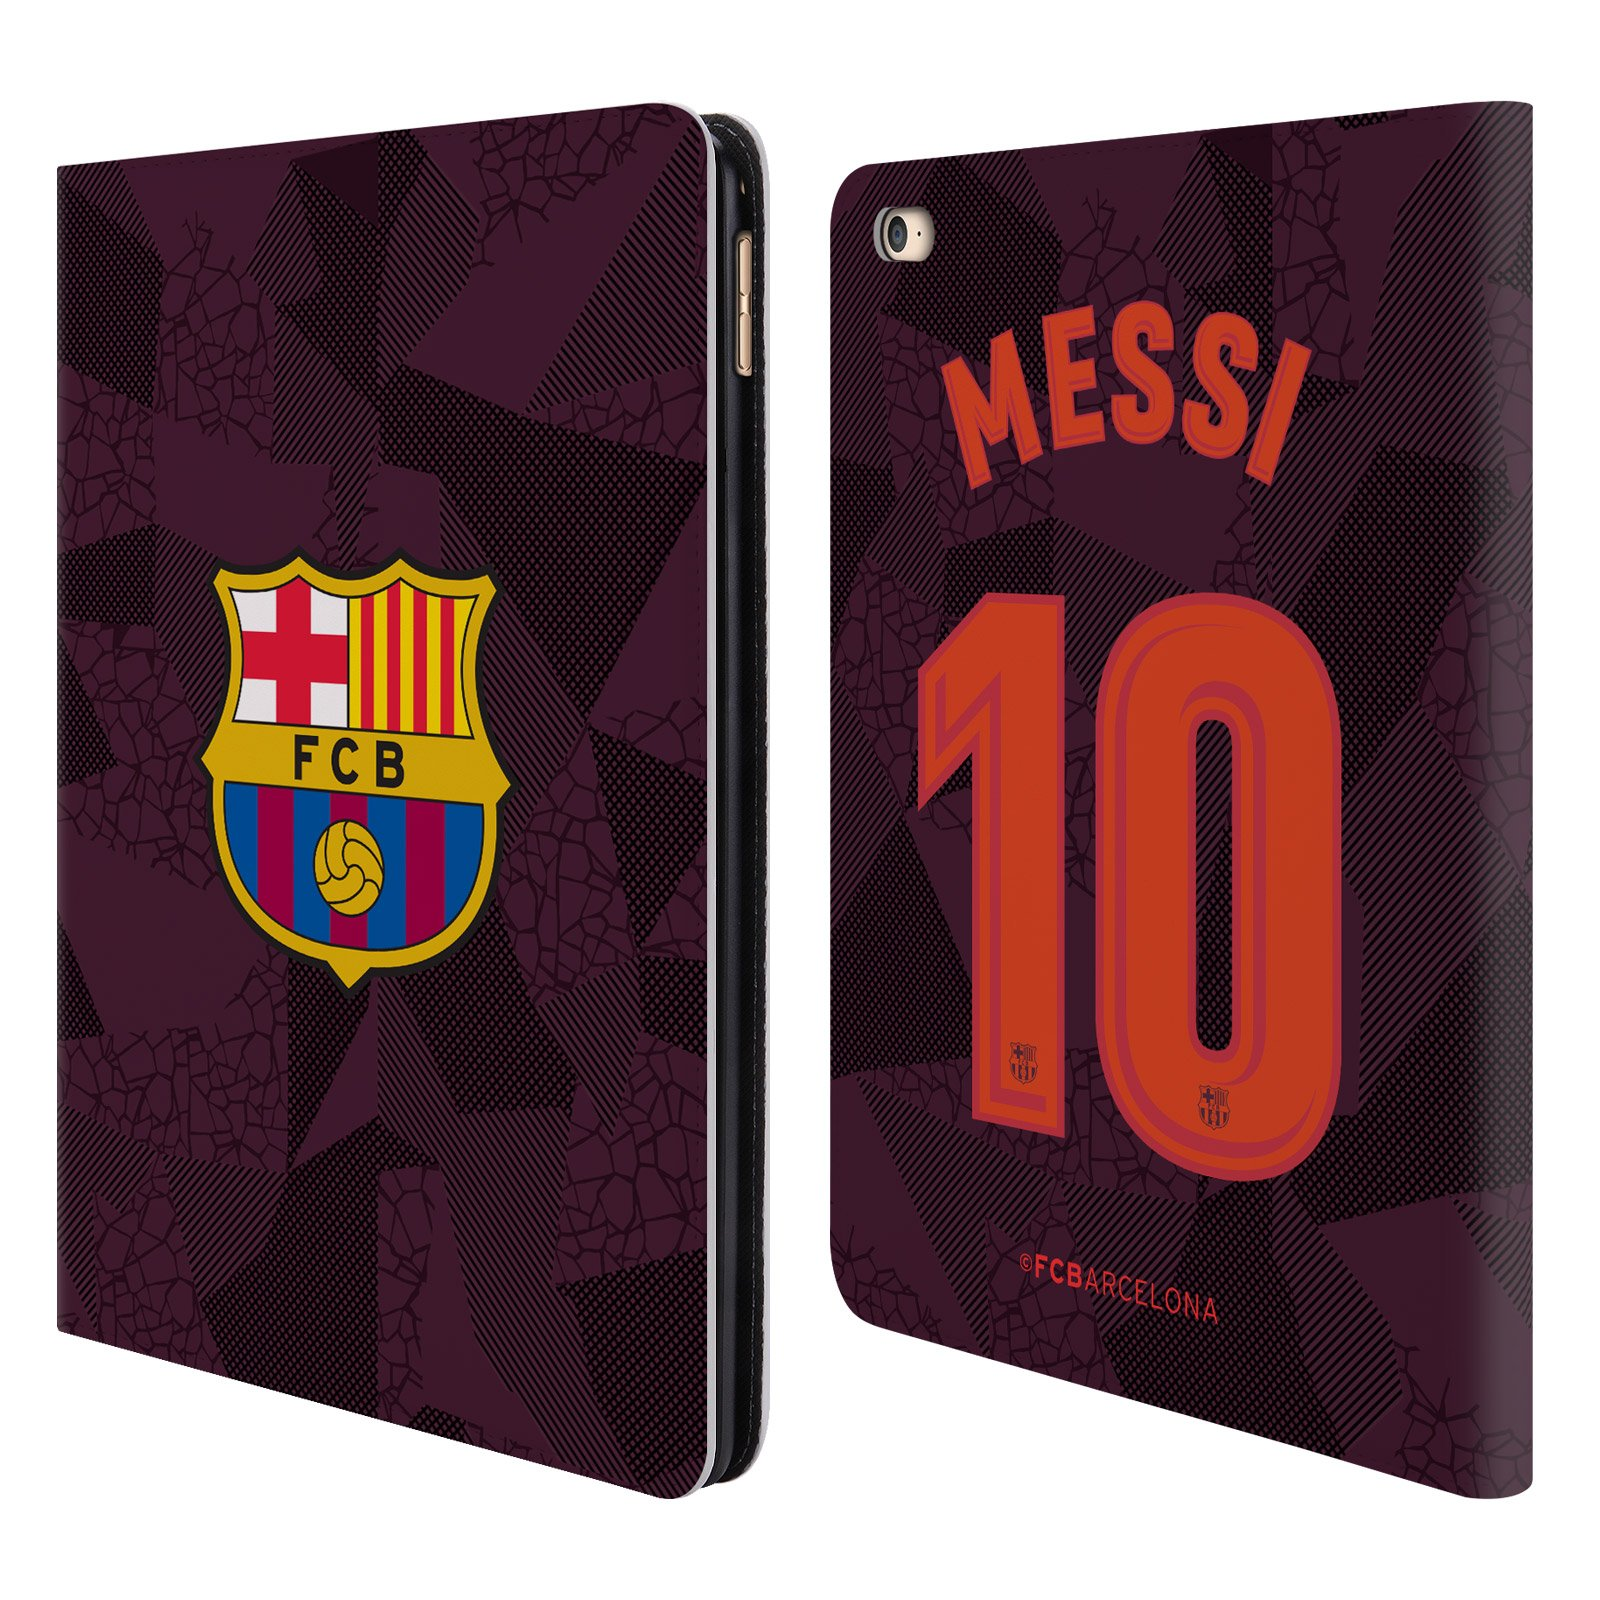 Official FC Barcelona Messi 2017/18 Players Third Kit Group 1 Leather Book Wallet Case Cover Compatible for iPad Air 2 (2014)